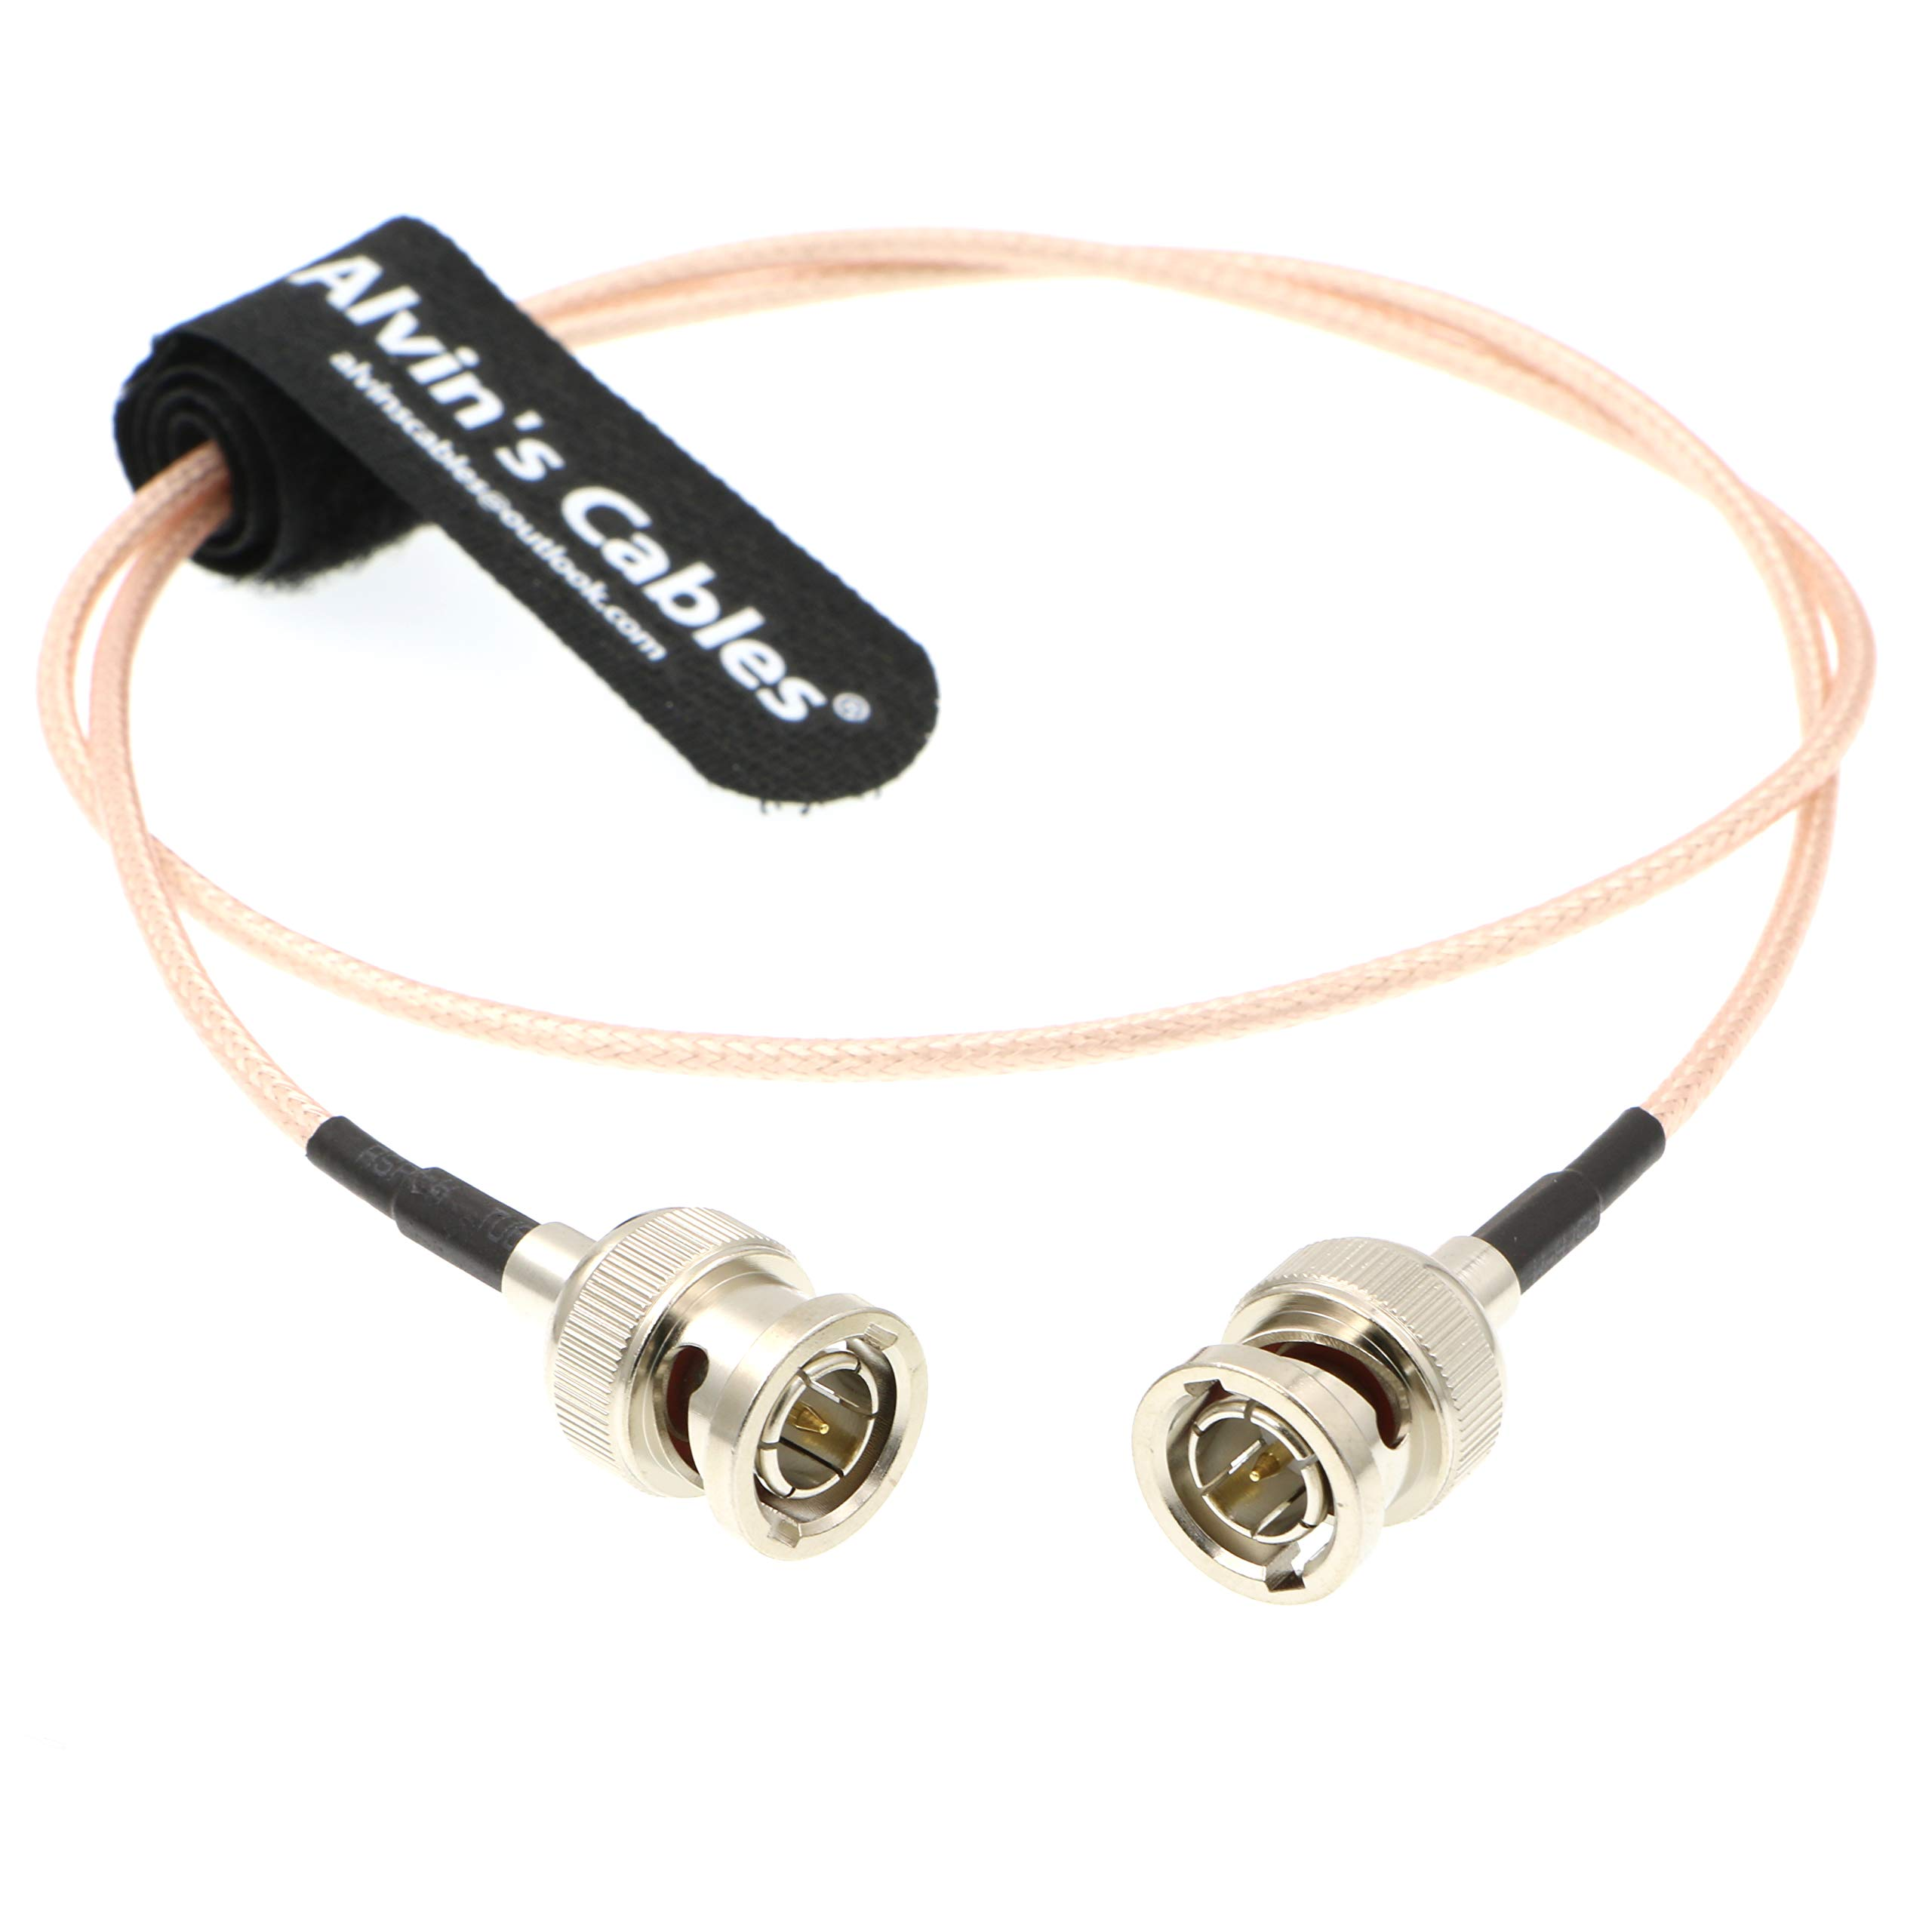 HD SDI Video Cable BNC Male to Male for BMCC Video Out Blackmagic Camera